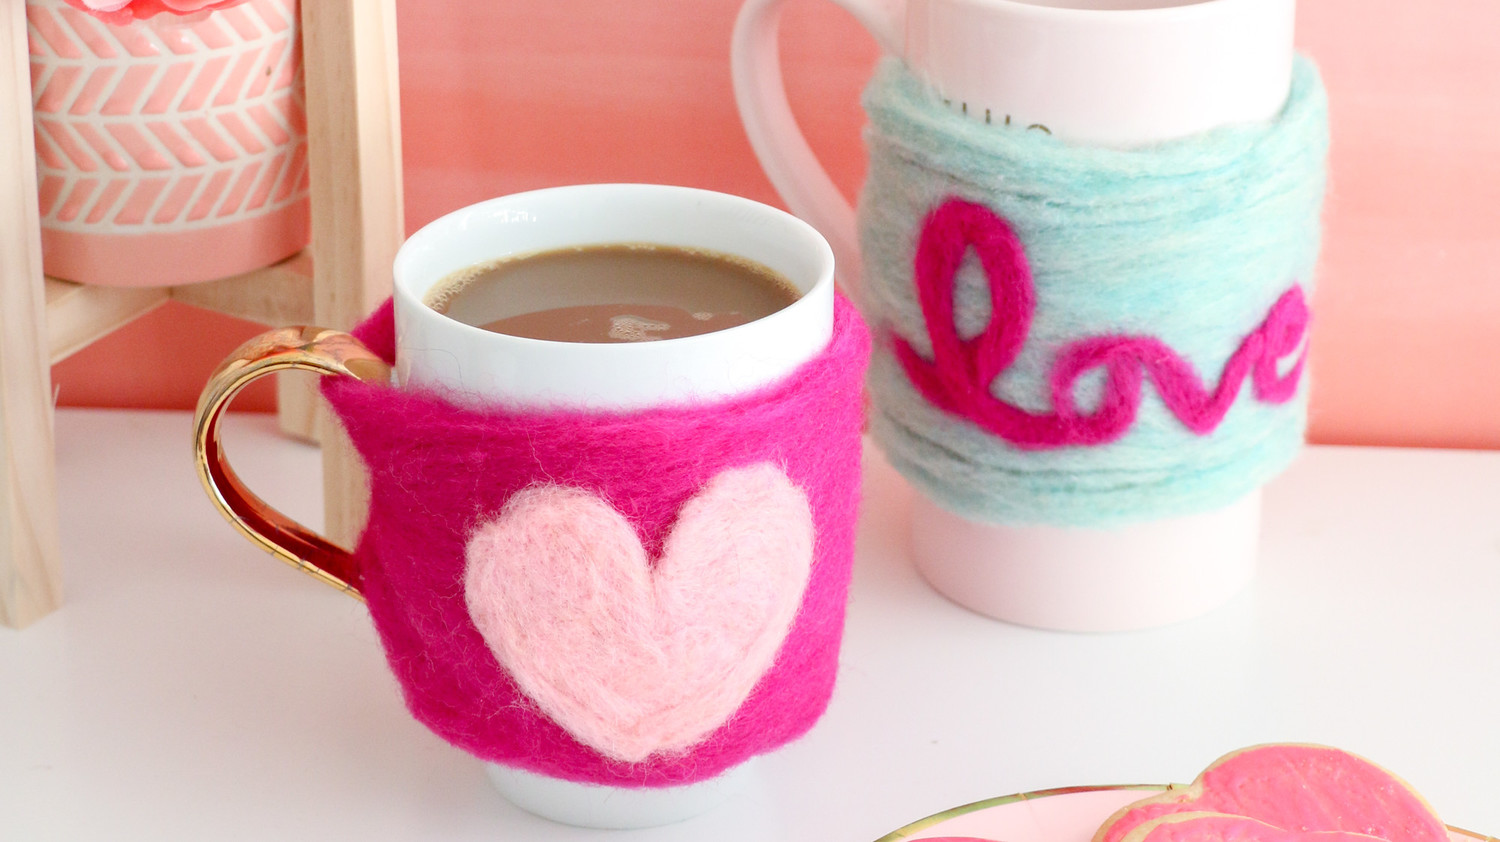 Needle-Felted Heart Mug Cozy